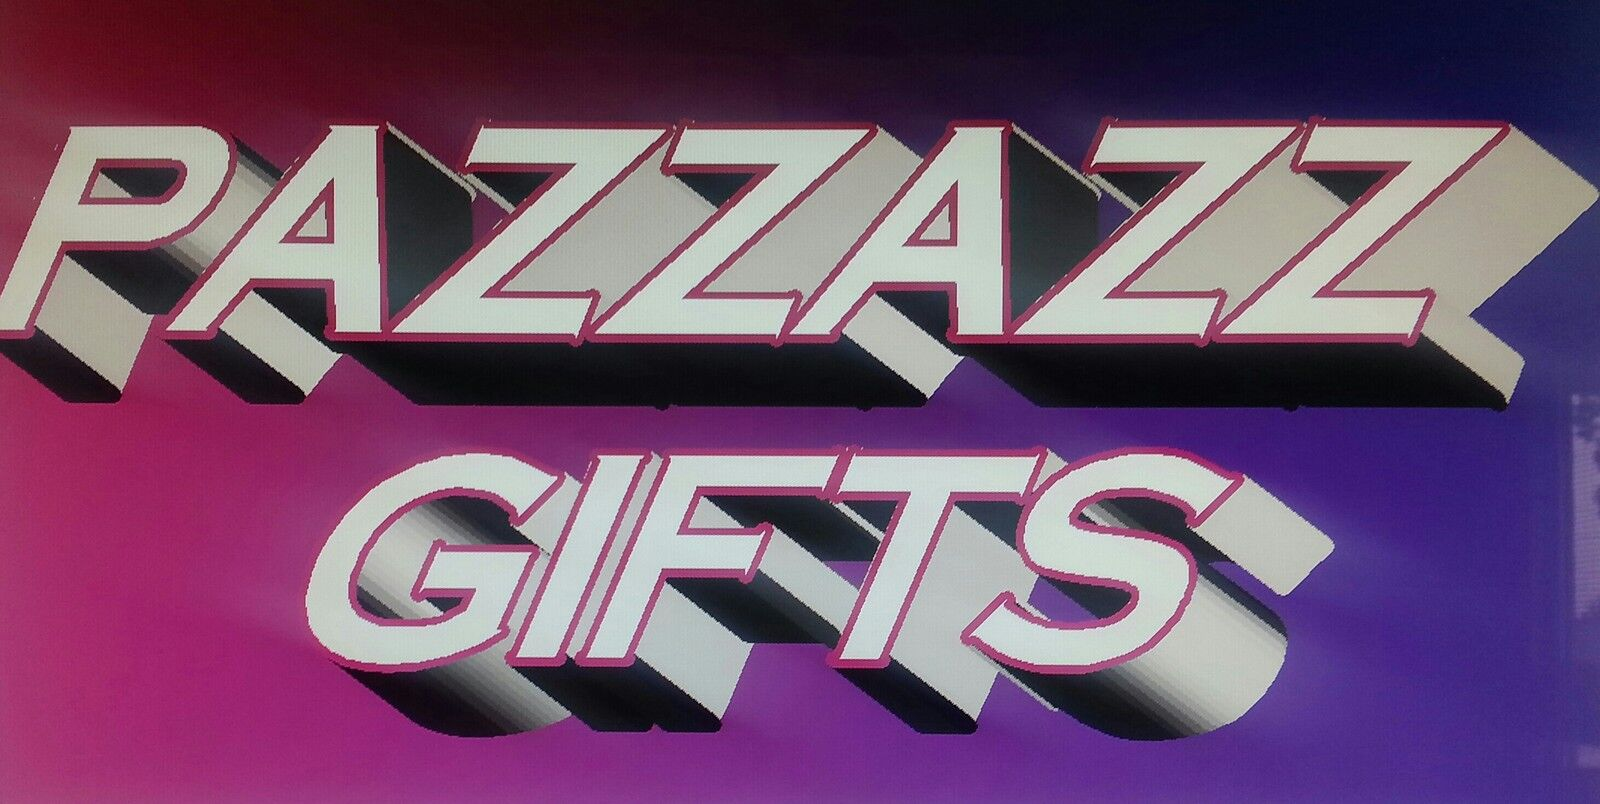 Pazzazz Gifts